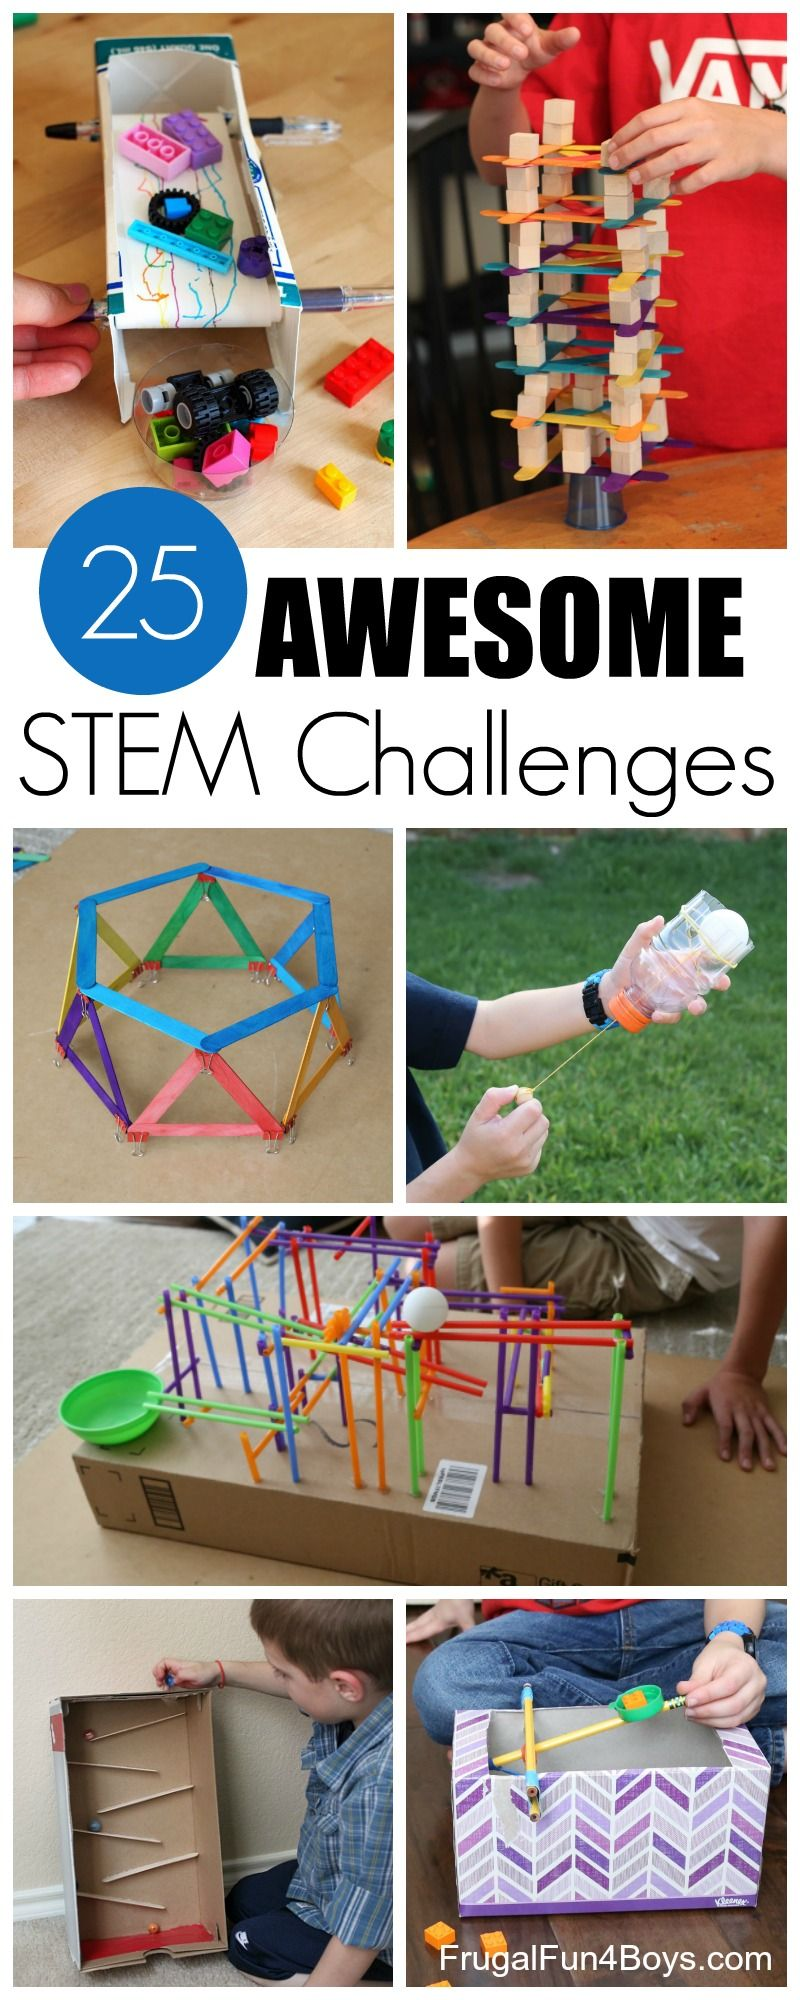 30 Awesome Stem Challenges For Kids With Inexpensive Or Recycled